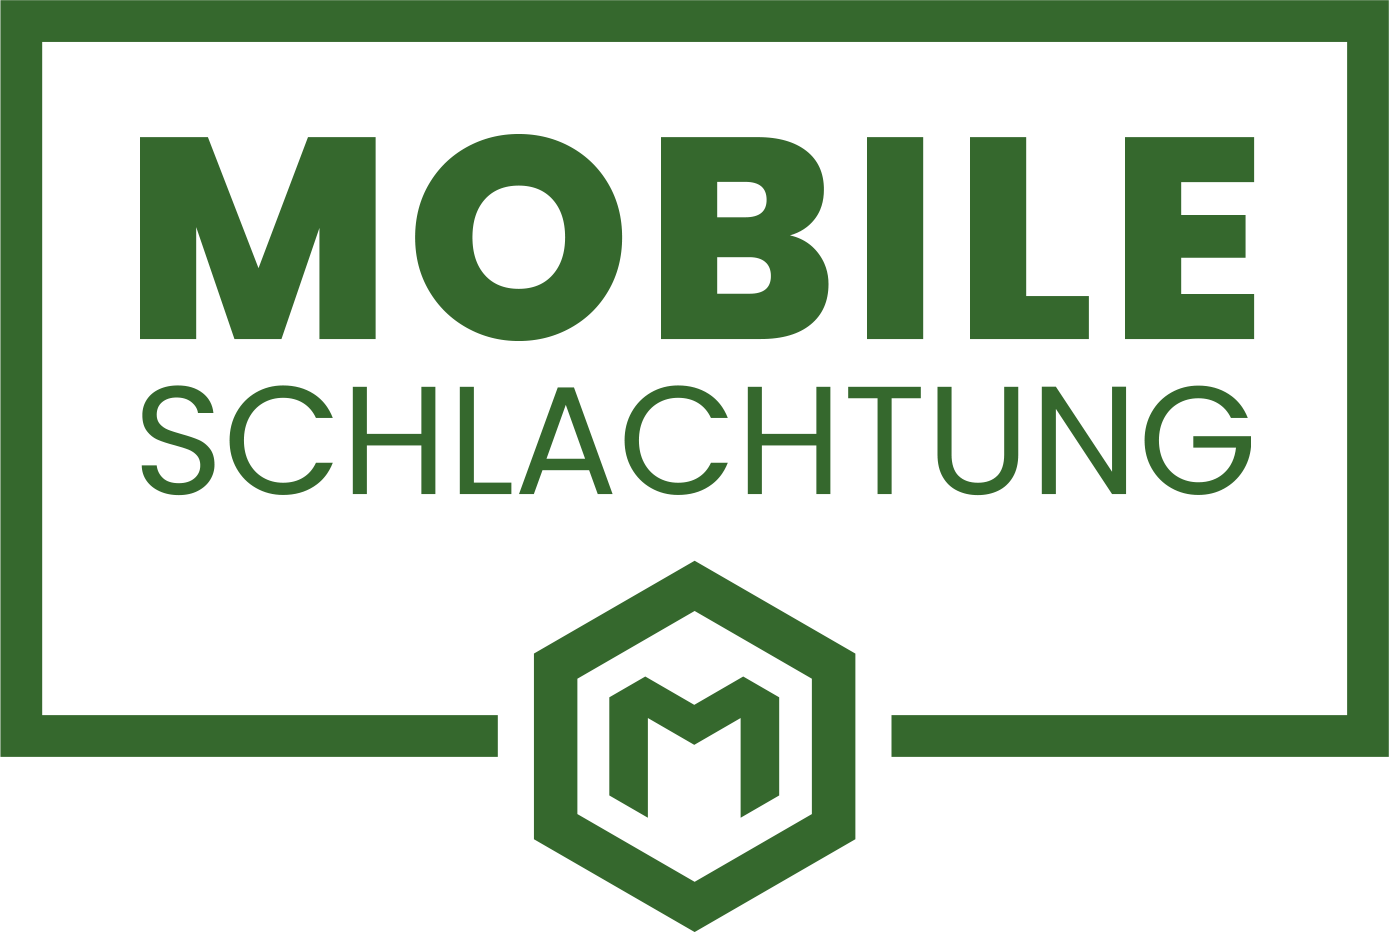 Mobile Schlachtung